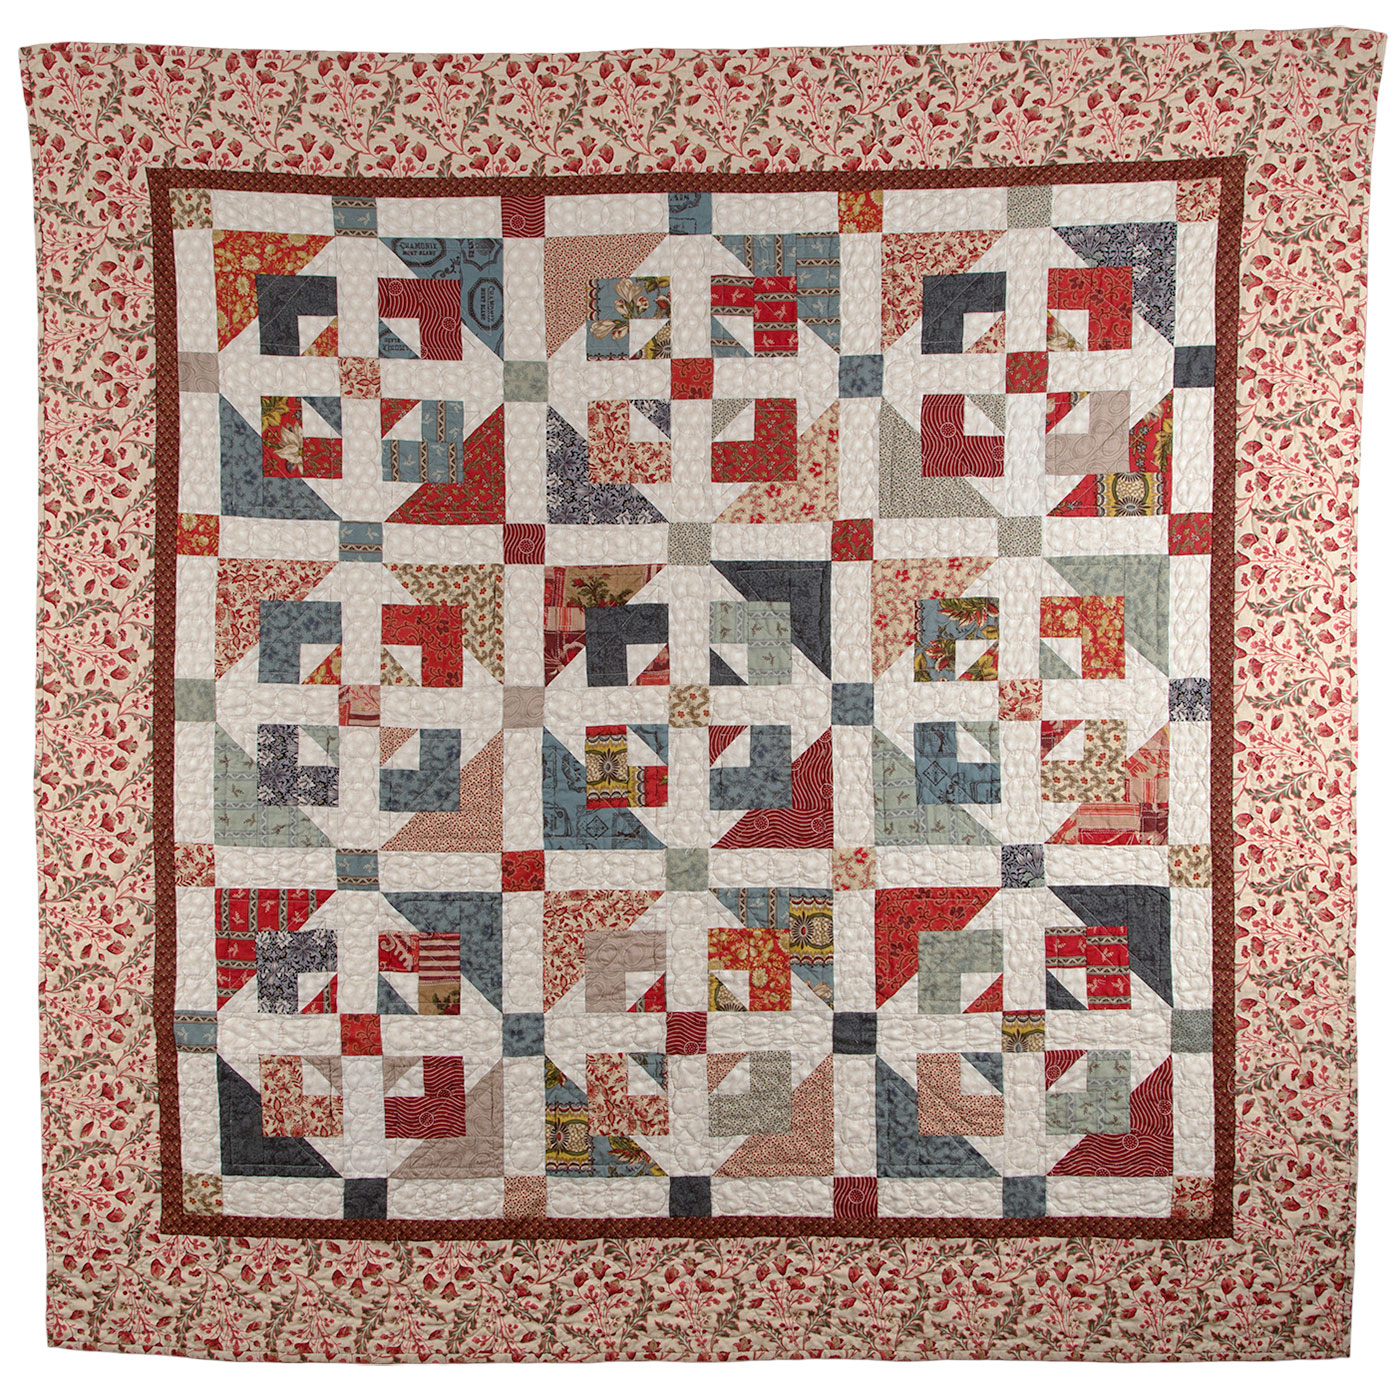 Episode 231: Still Quilting (Will it ever end?)